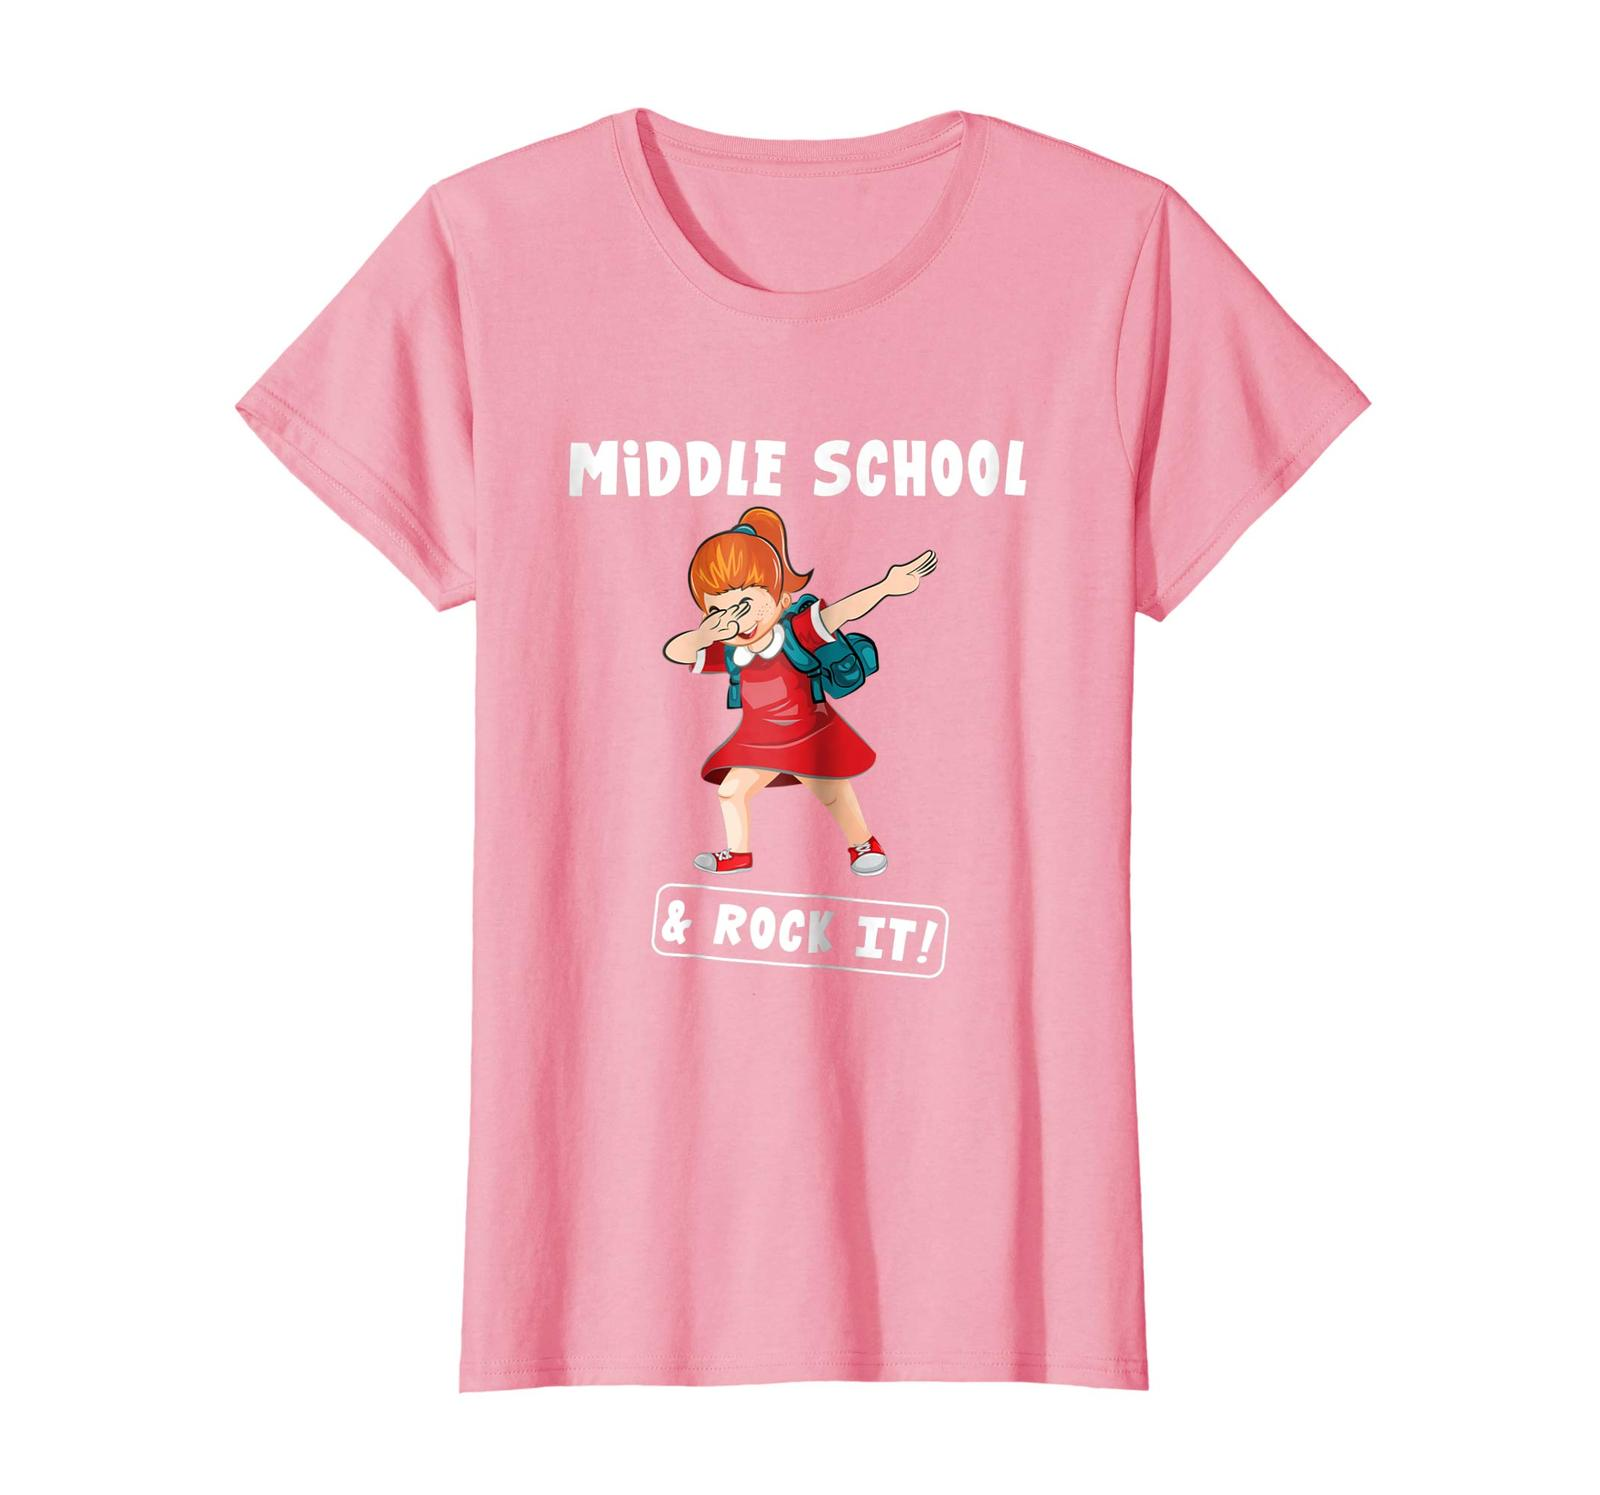 Brother Shirts - Girl Dabbing First Day Of Middle School And Rock It! Shirt Wowe image 2